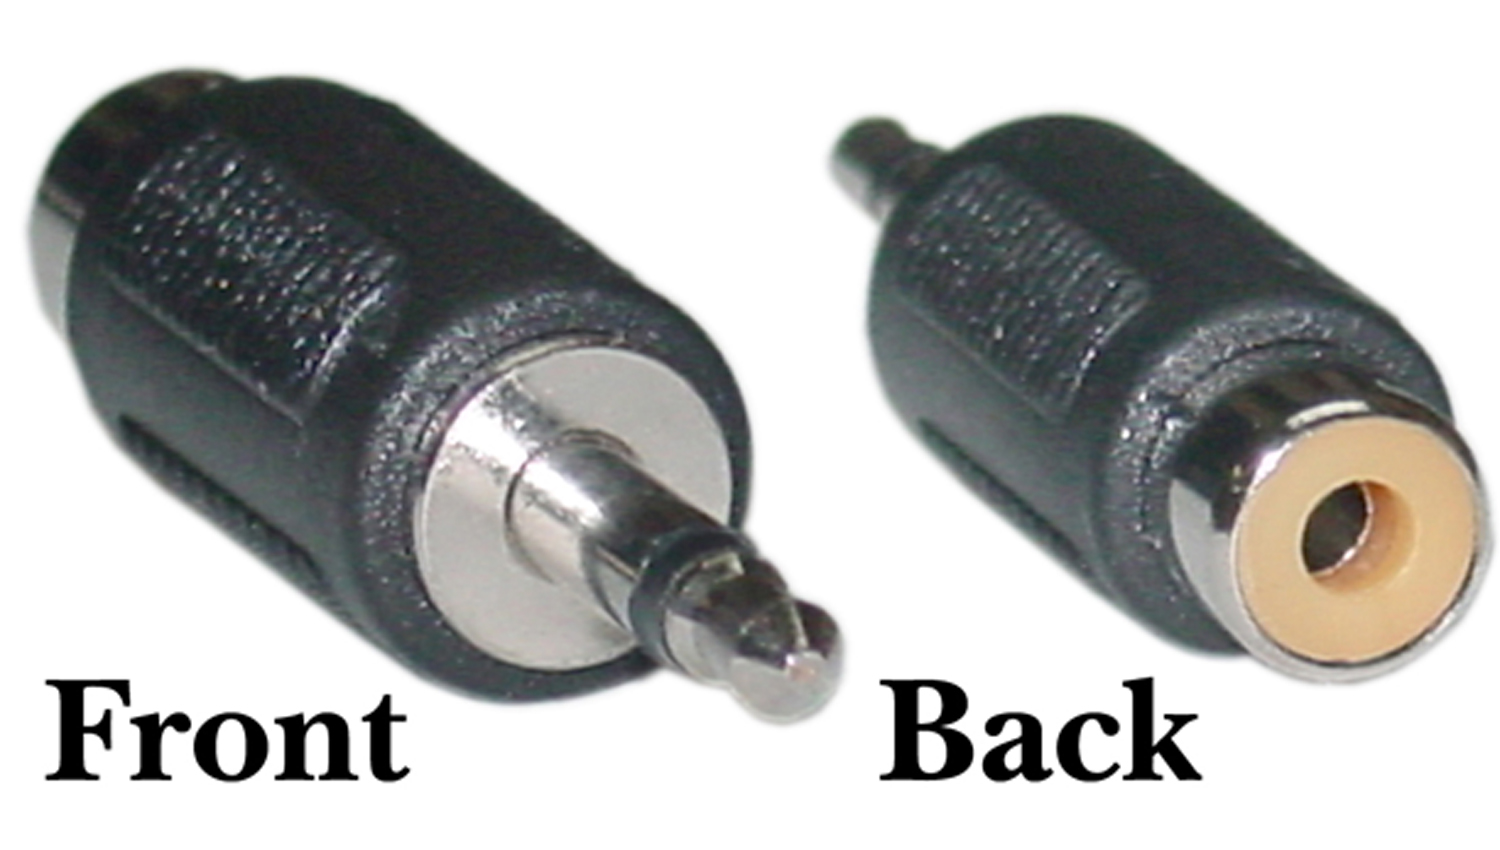 Offex 3.5mm Mono Male to RCA Female adapter